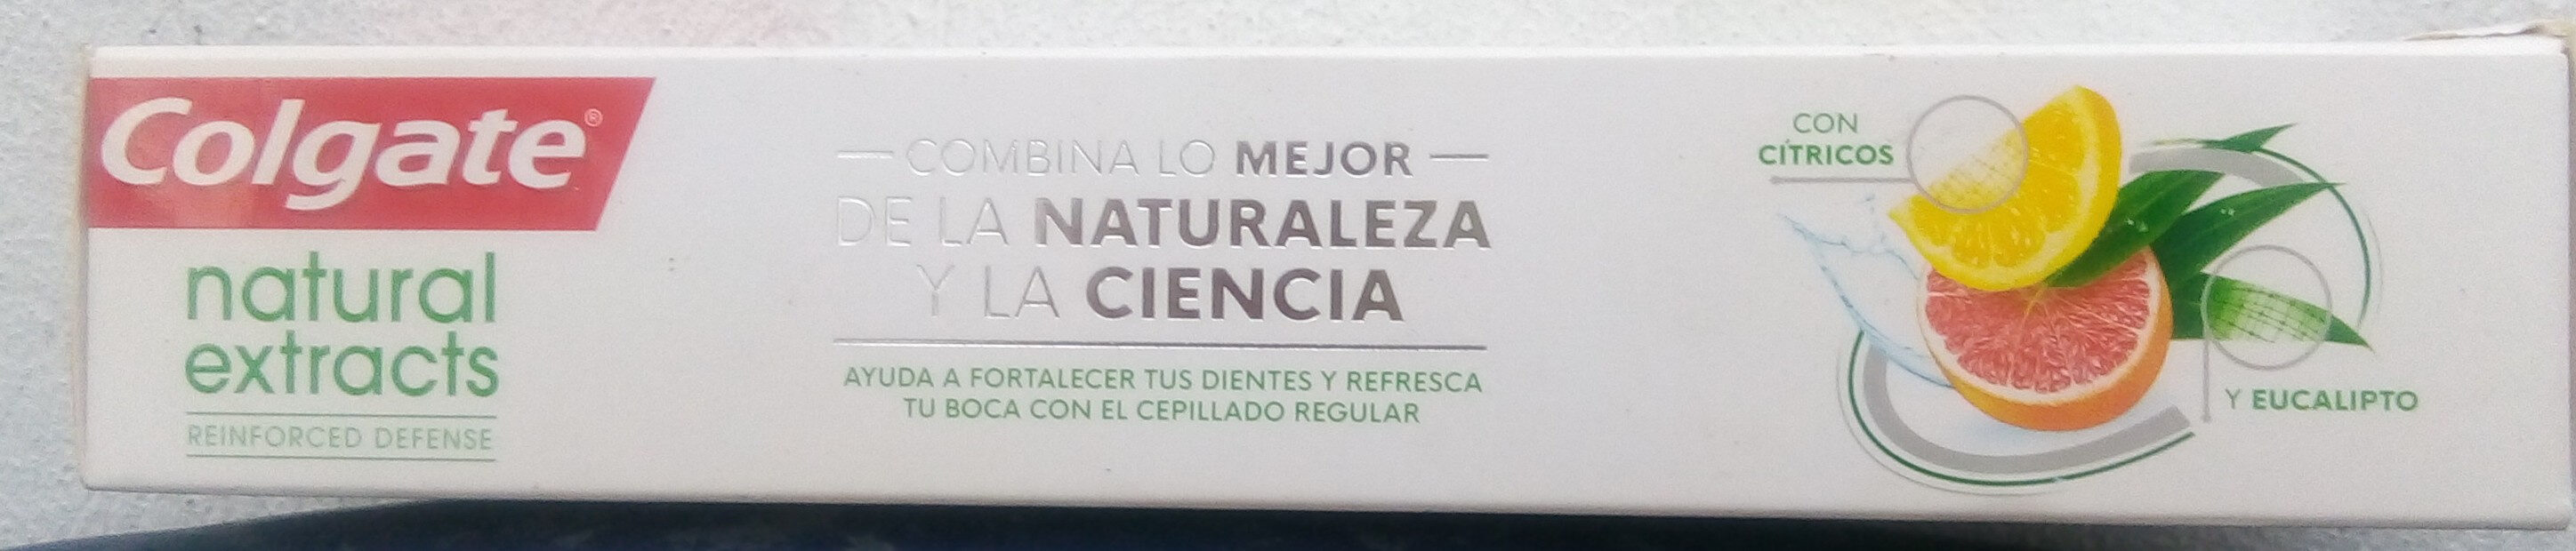 natural extracts - Product - es